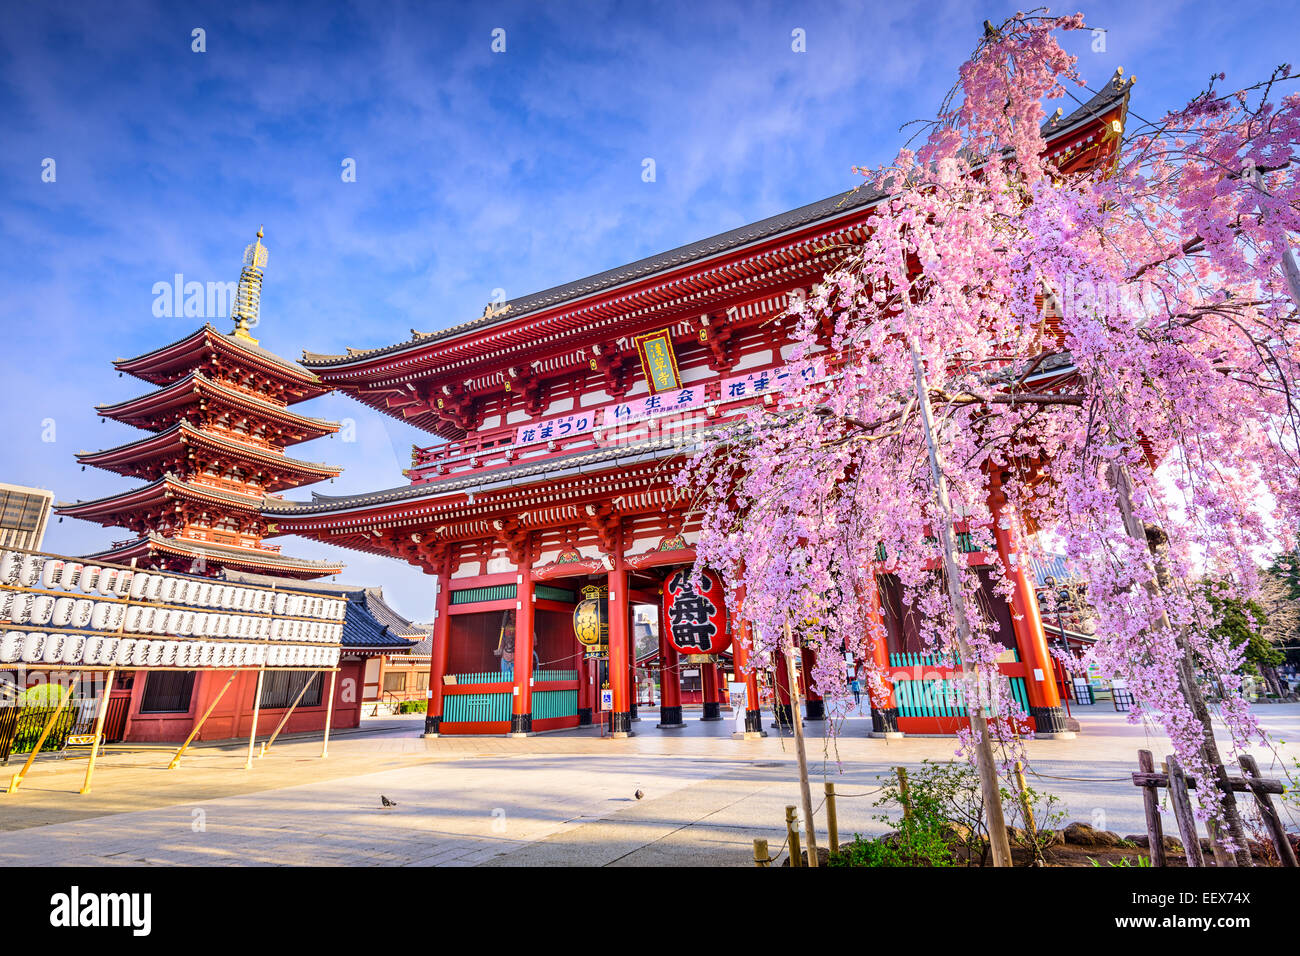 Tokyo, Japan at Sensoji Temple's Hozomon Gate in the Asakusa District in the springtime. - Stock Image